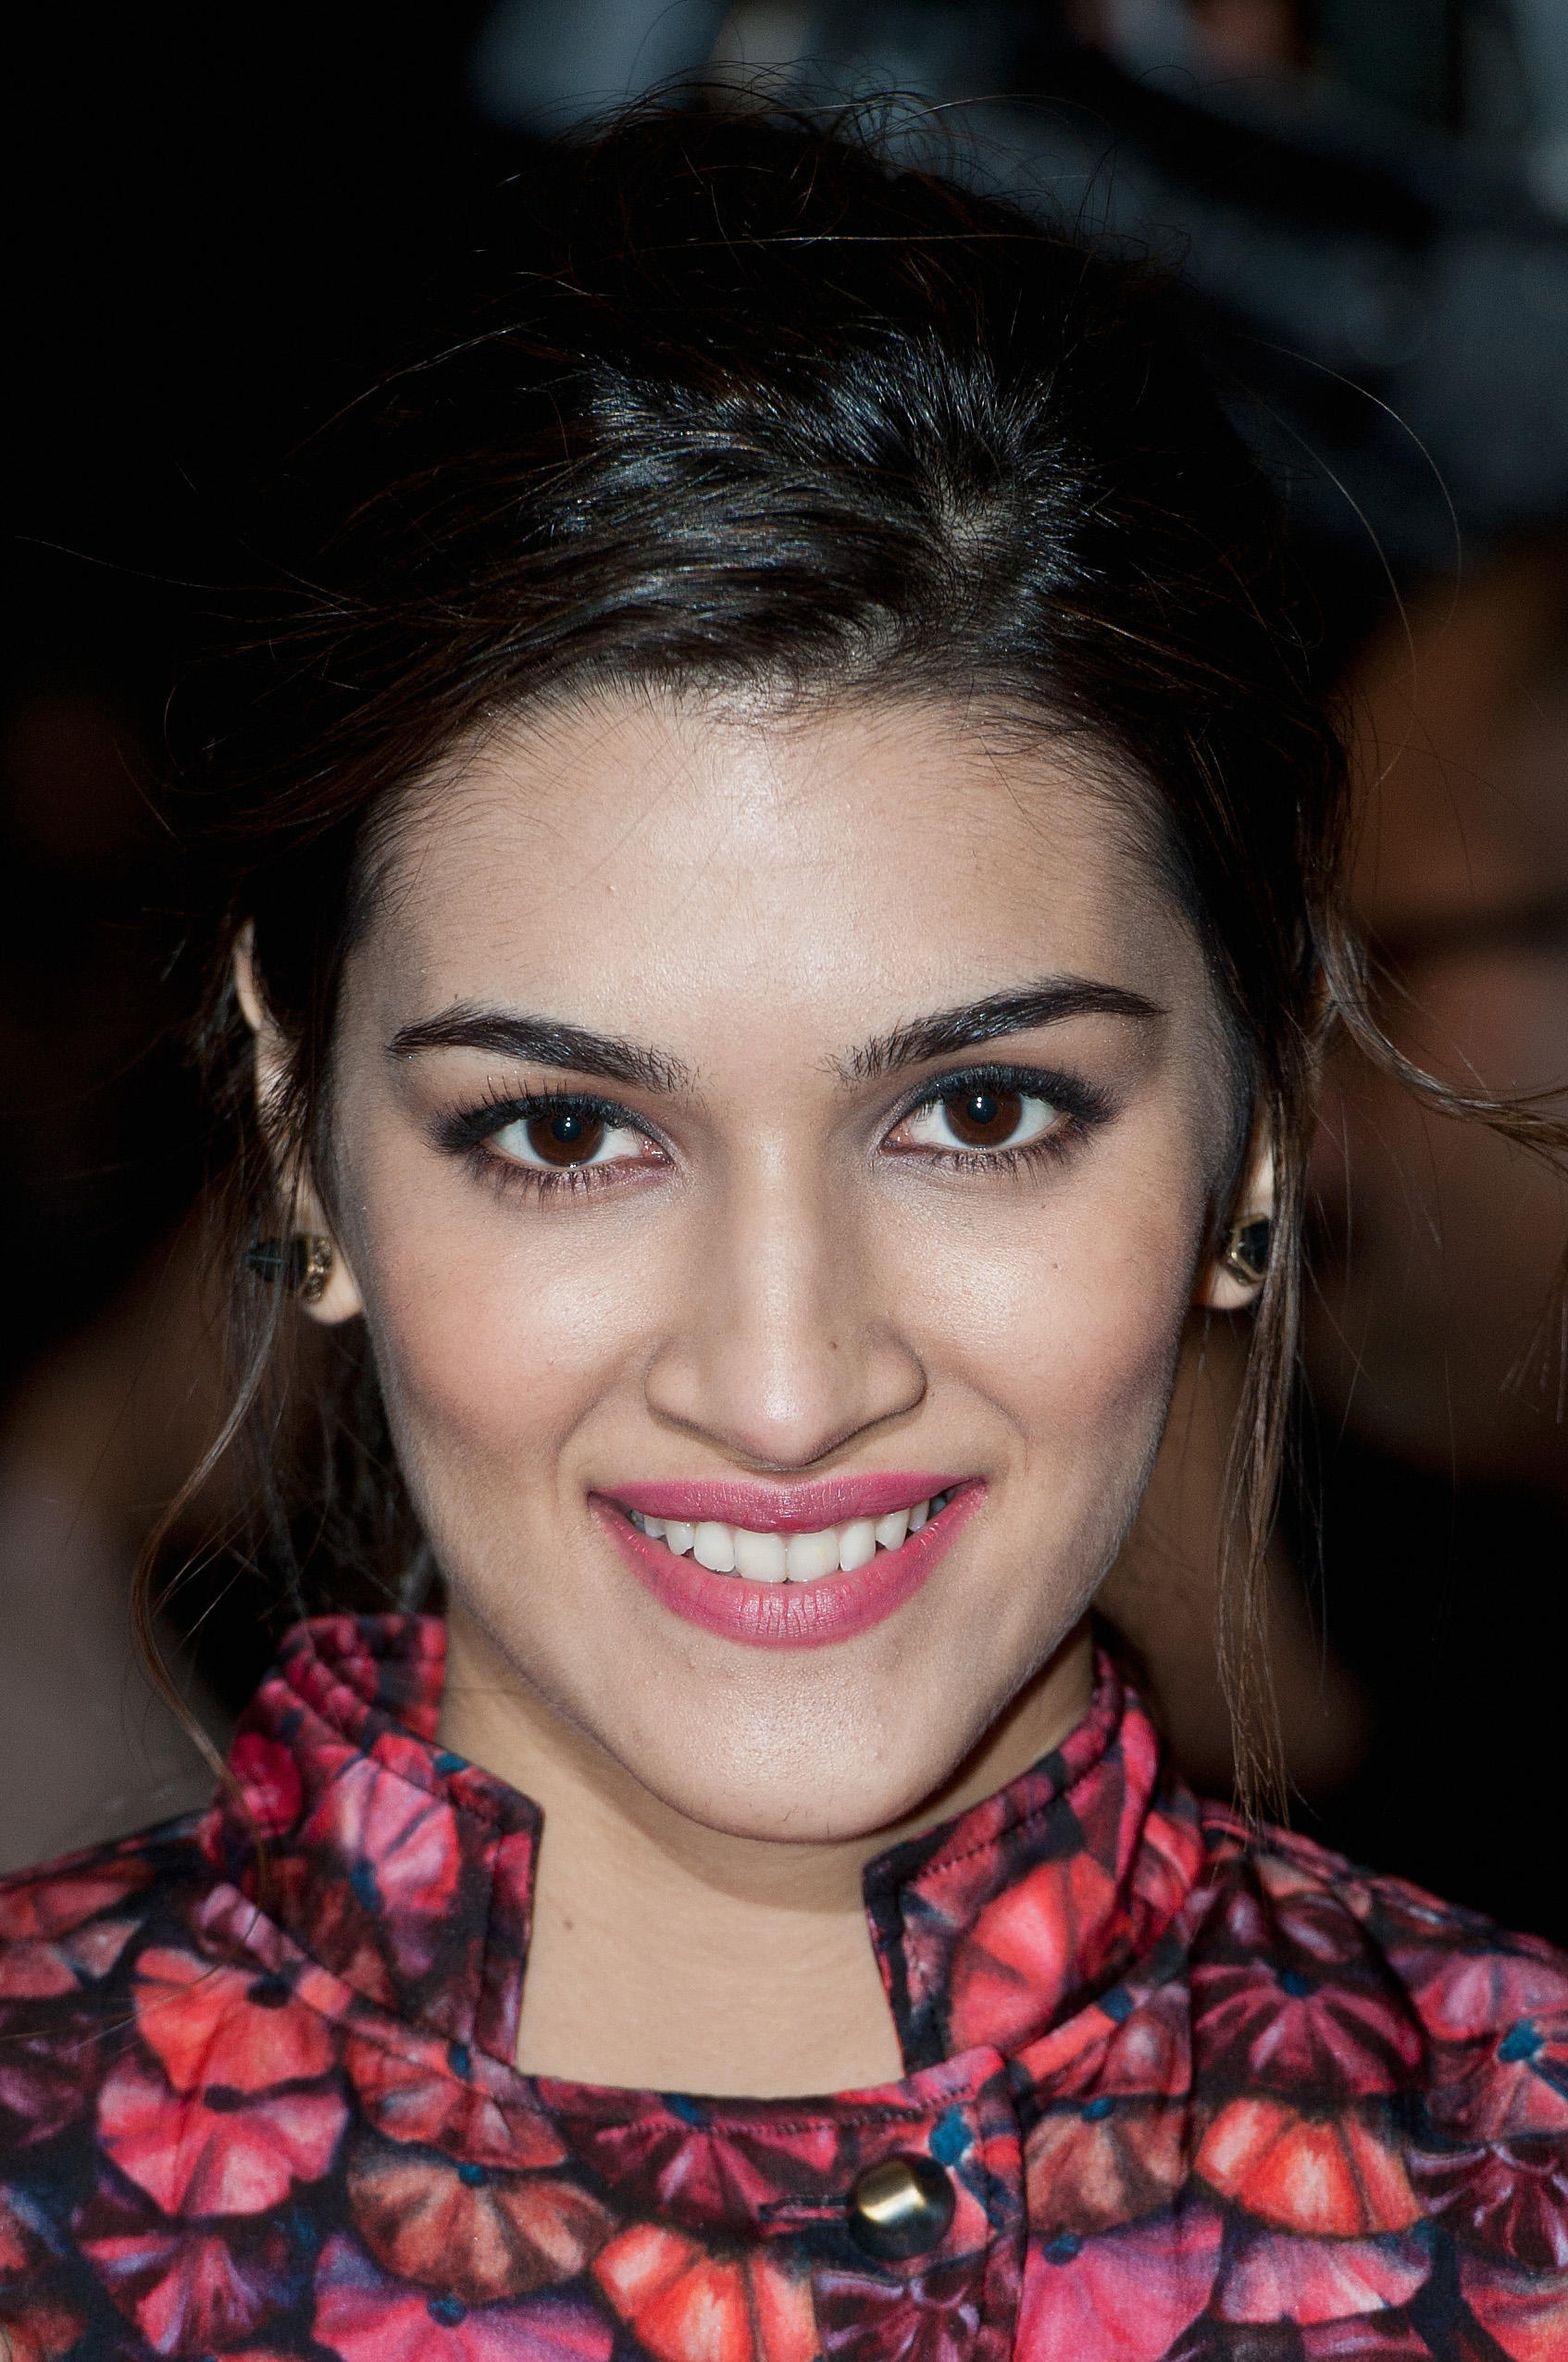 Kriti Sanon at the Photocall for Bollywood film 'Dilwale' at Cineworld Feltham.